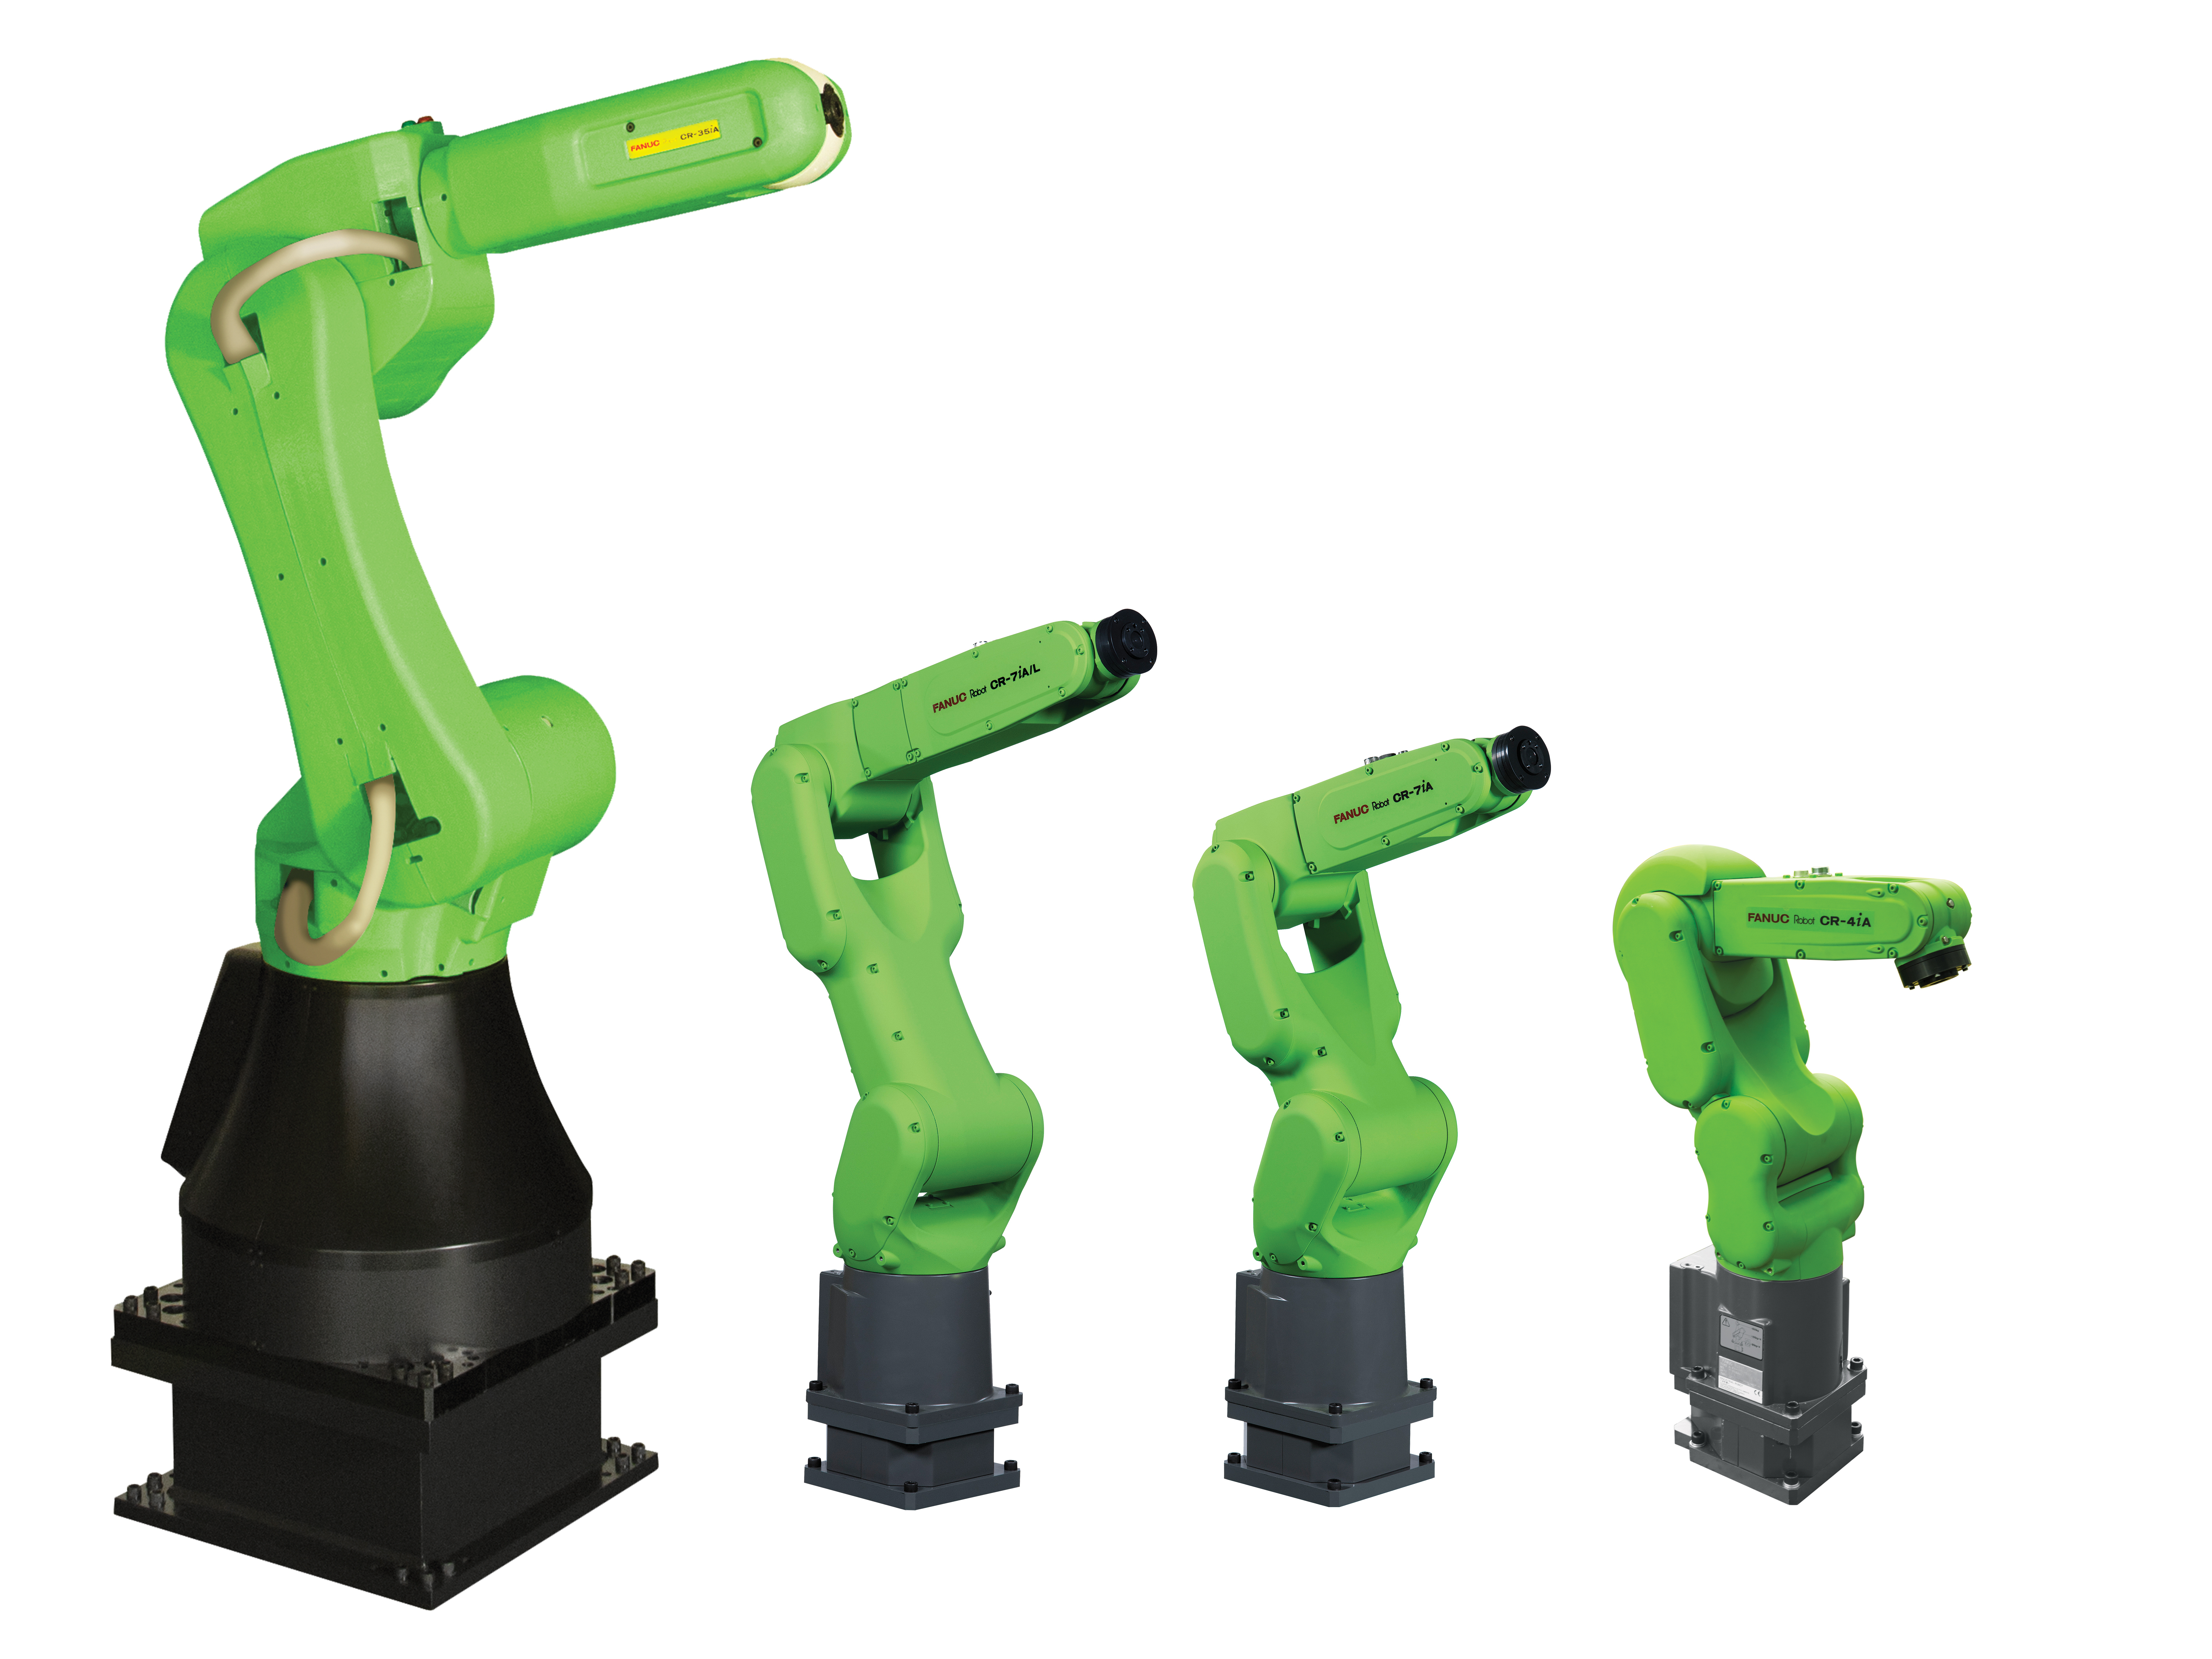 FANUC Introduces New Collaborative Robots in Human/Robot Interactive